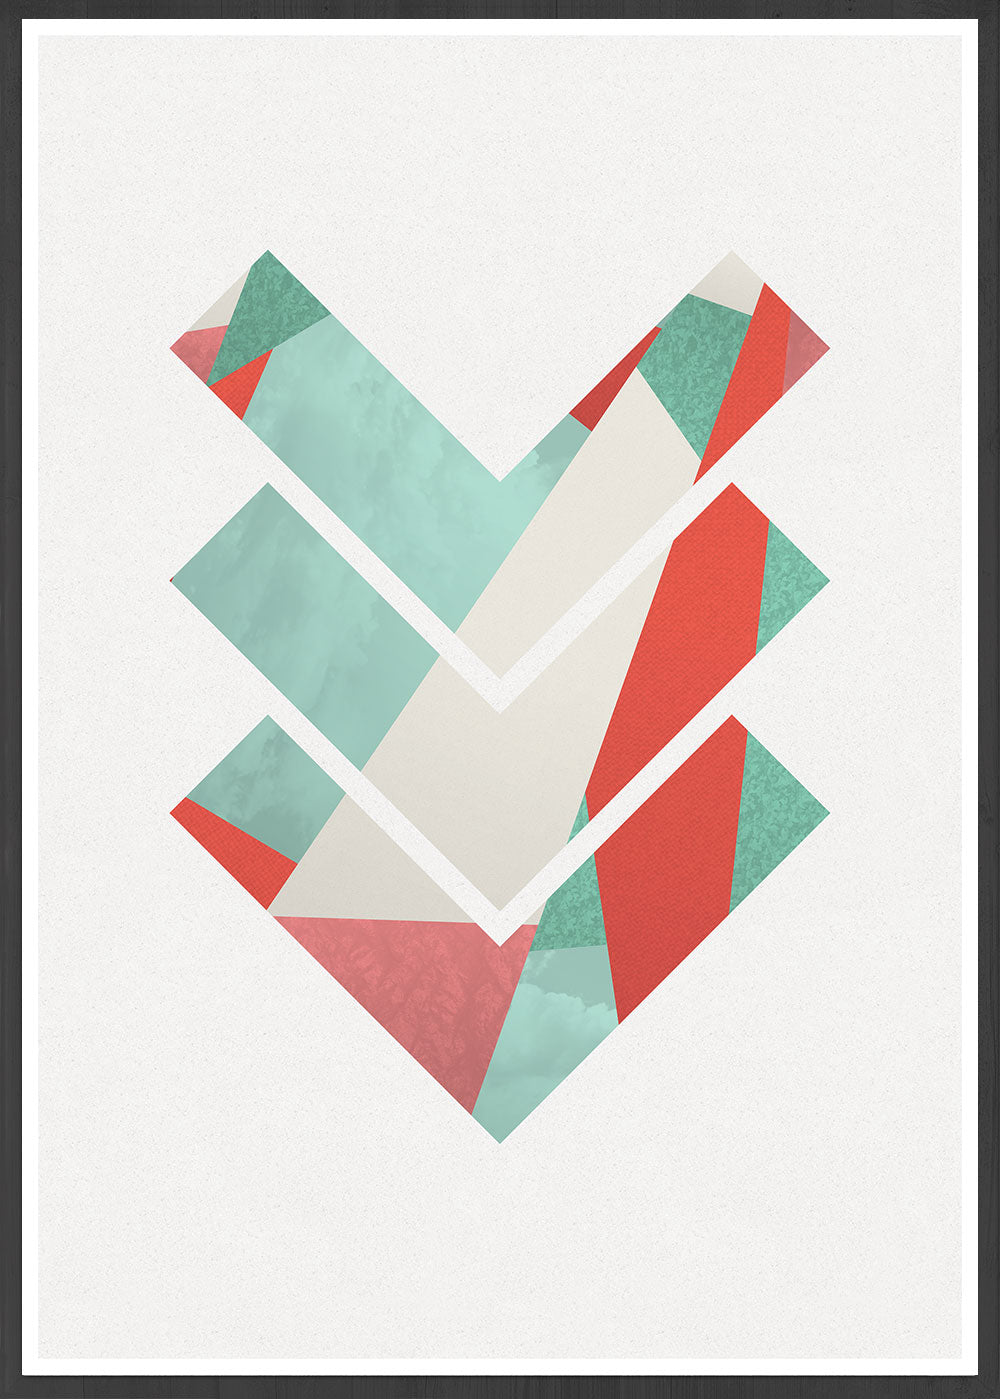 3 Arrows Minimal Geometric Art Print in a frame